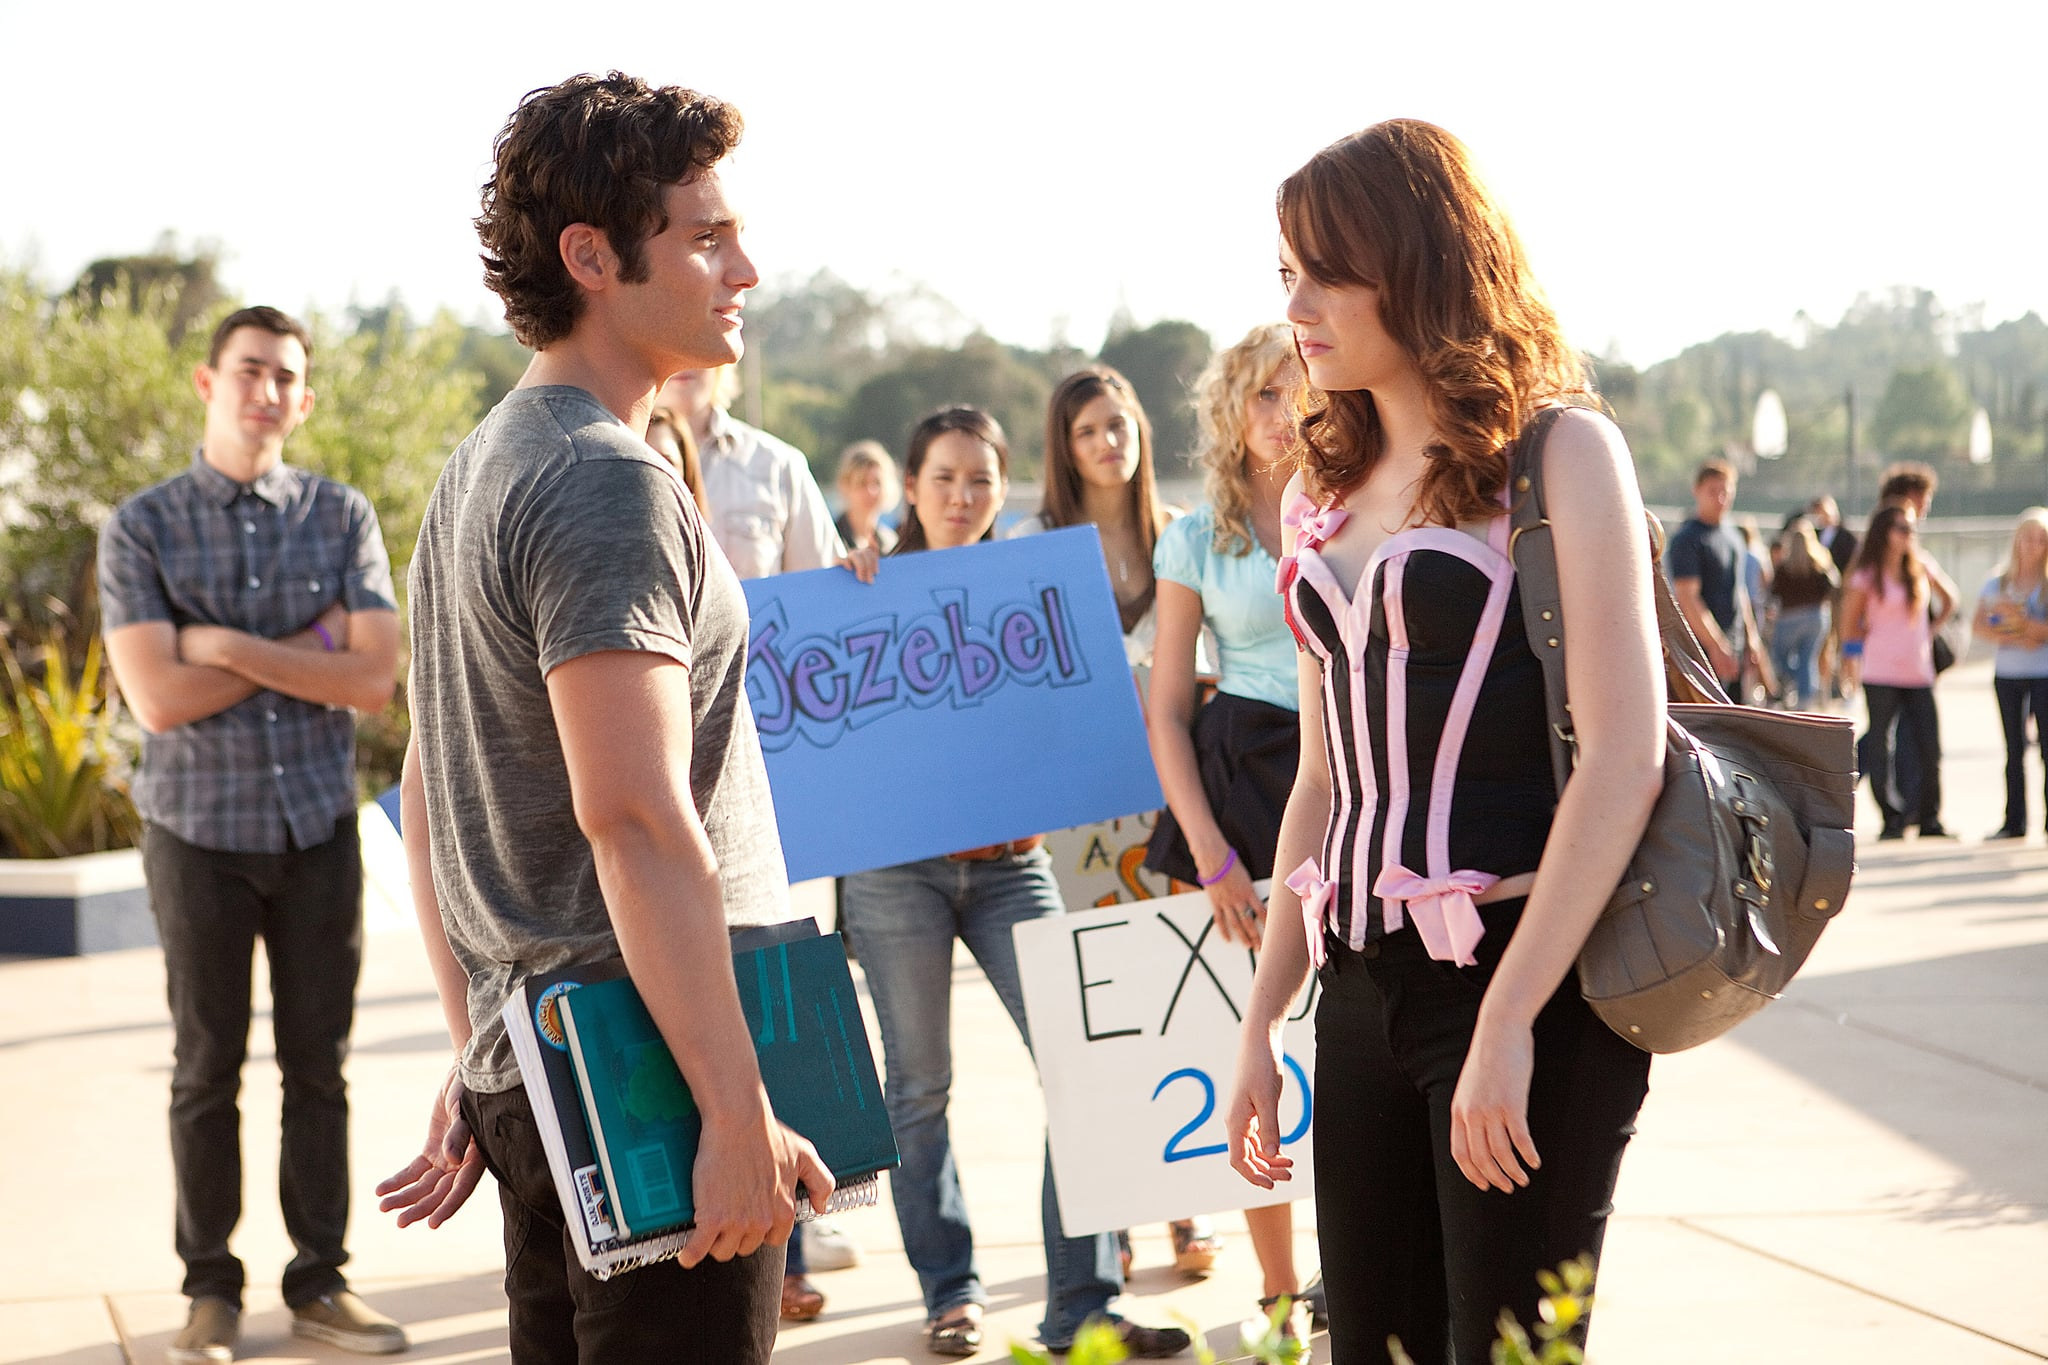 Emma Stone Scarlet Letter.A Spinoff Of Emma Stone S Easy A Movie Will Take Place At